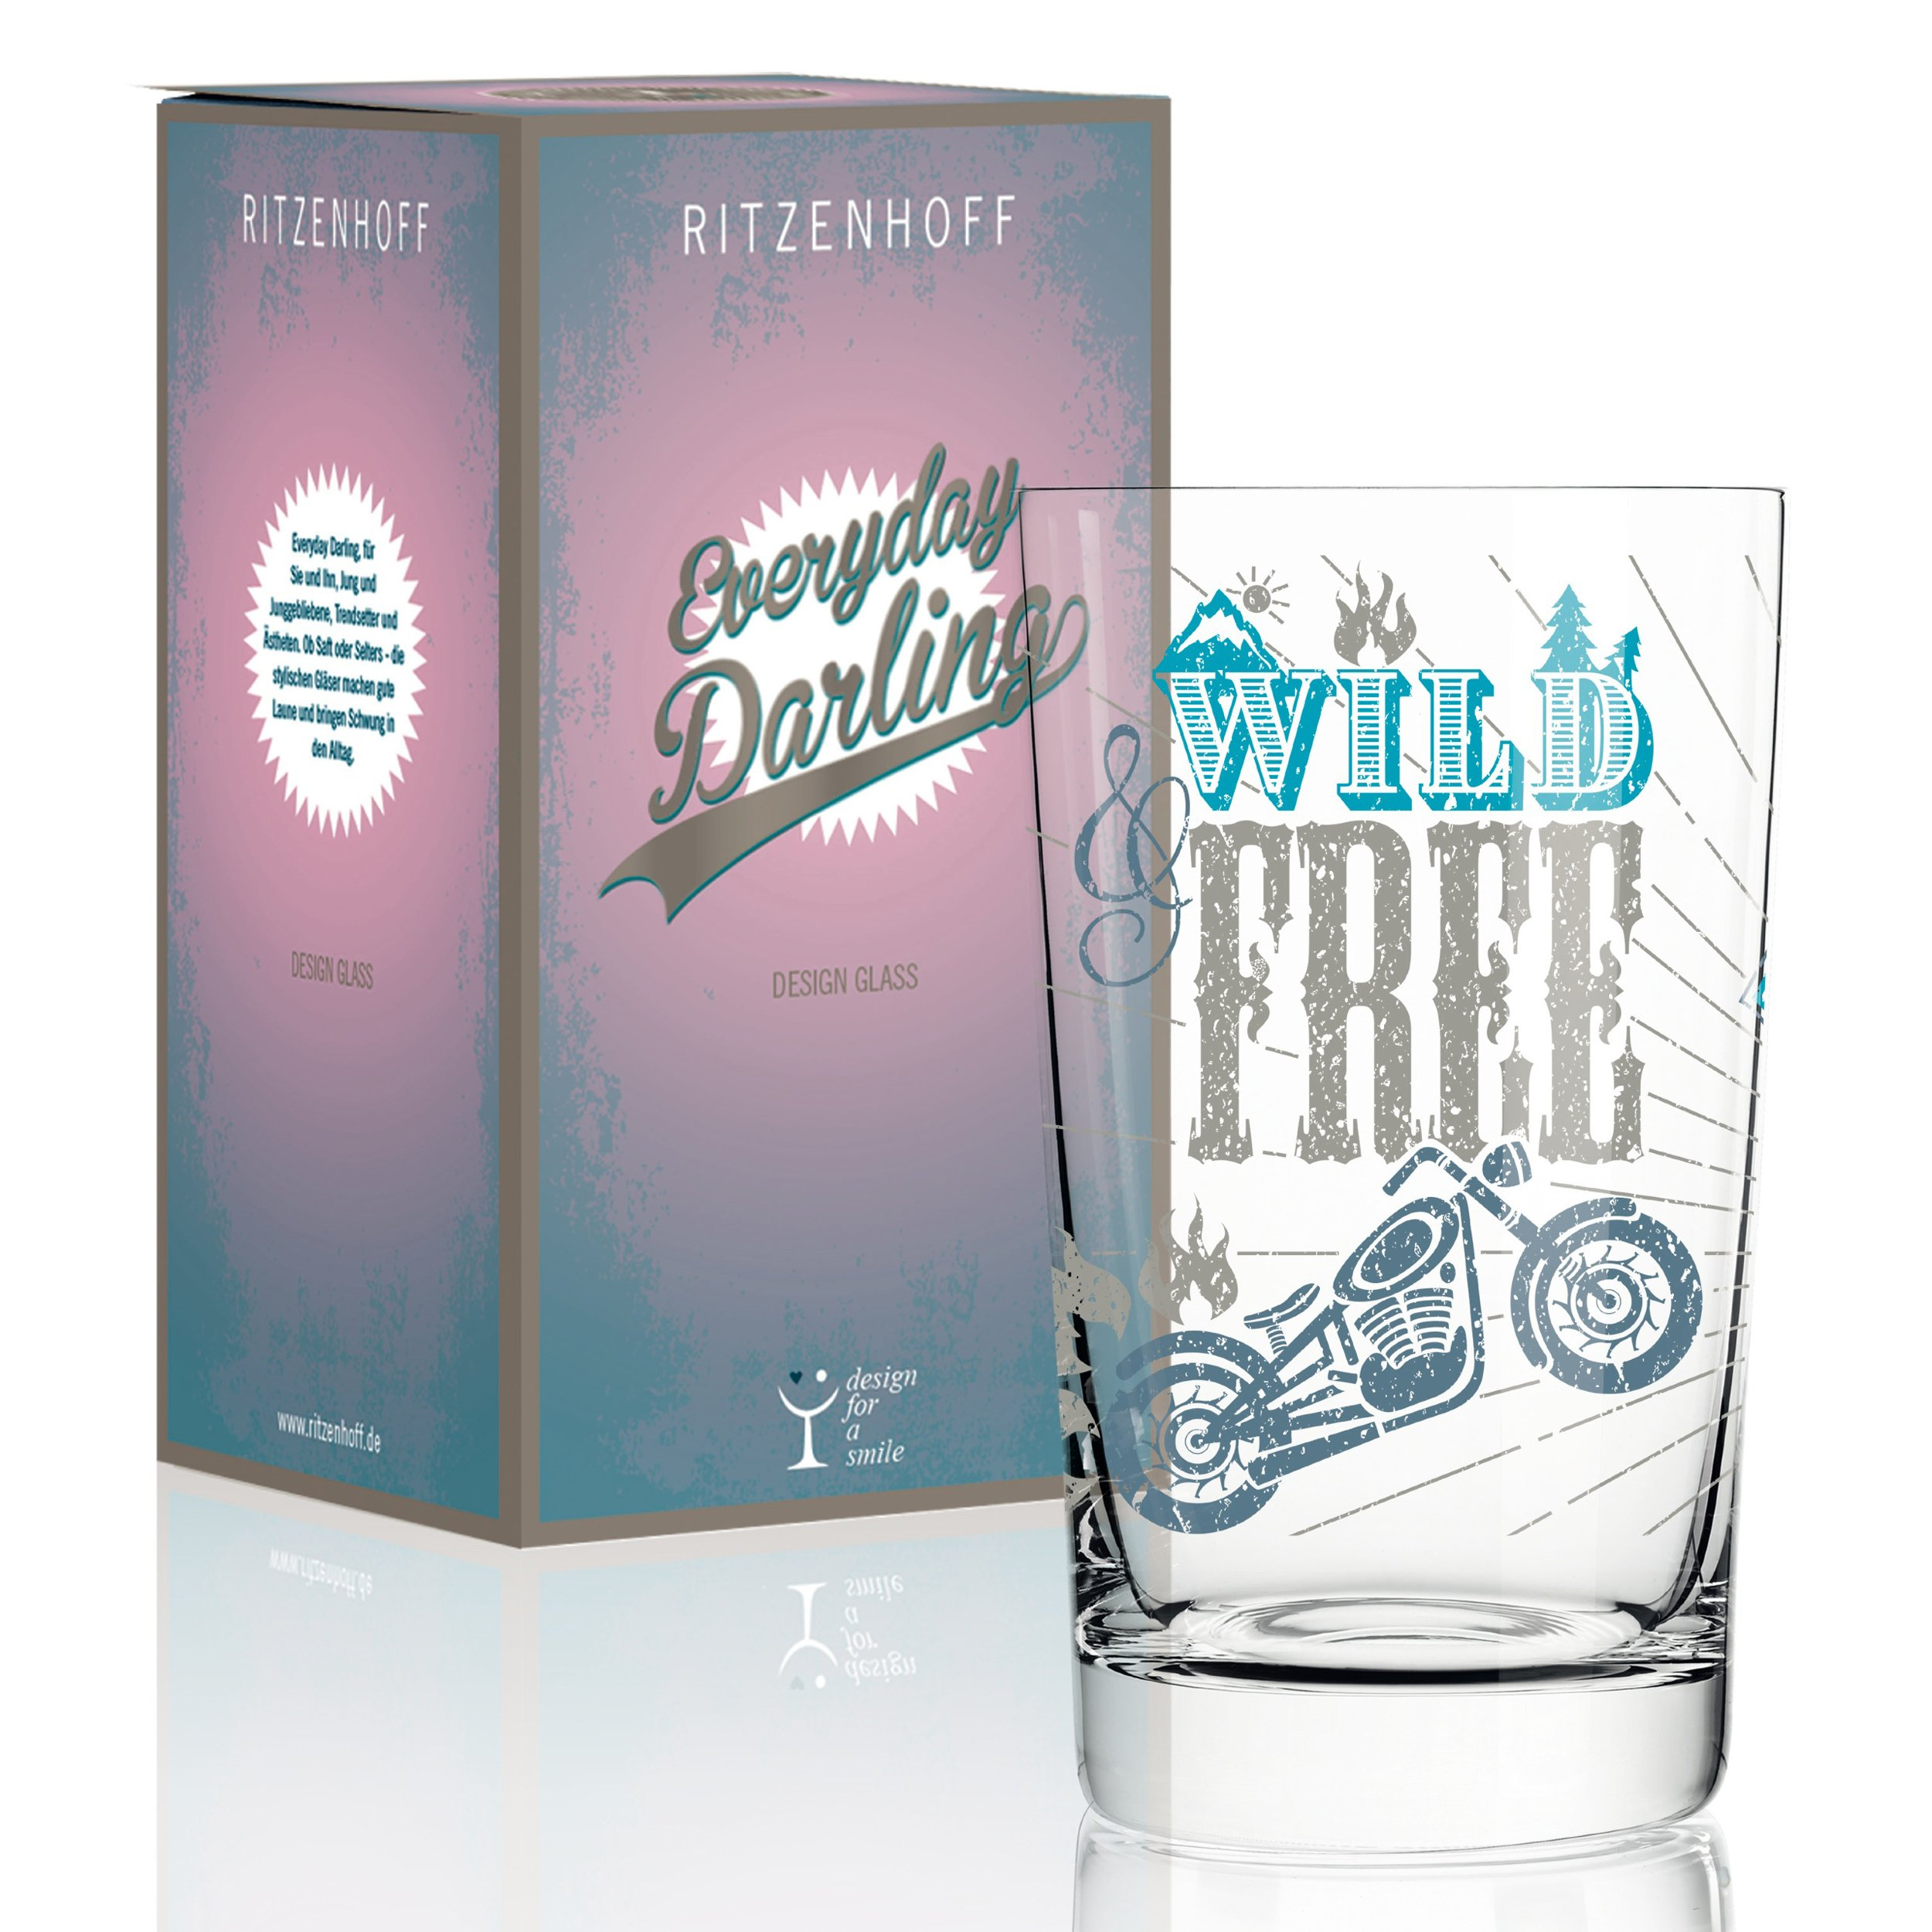 RITZENHOFF Everyday Darling Soft Drink Glass by Petra Mohr (Be Free) Made of Crystal Glass 300 ml with Trendy Designs